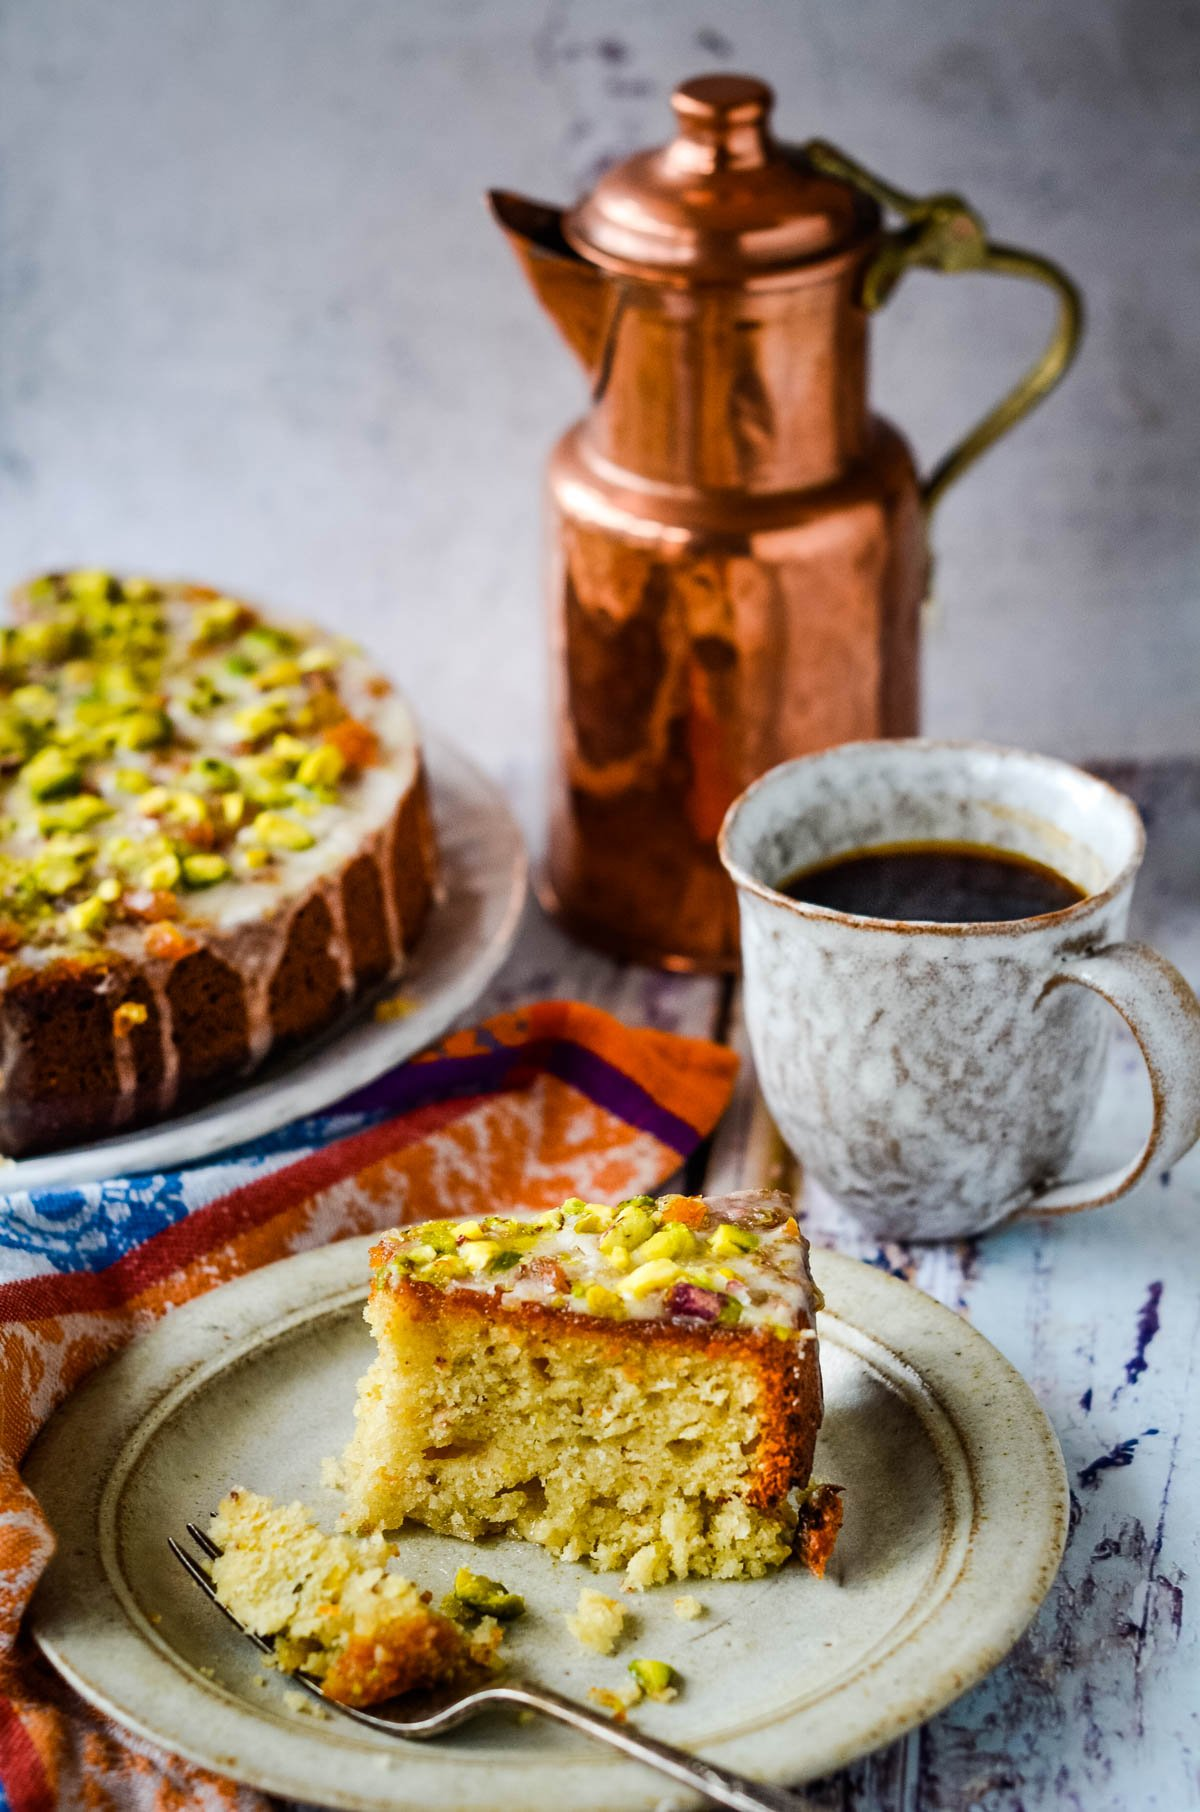 slice of cake with coffee pot behind